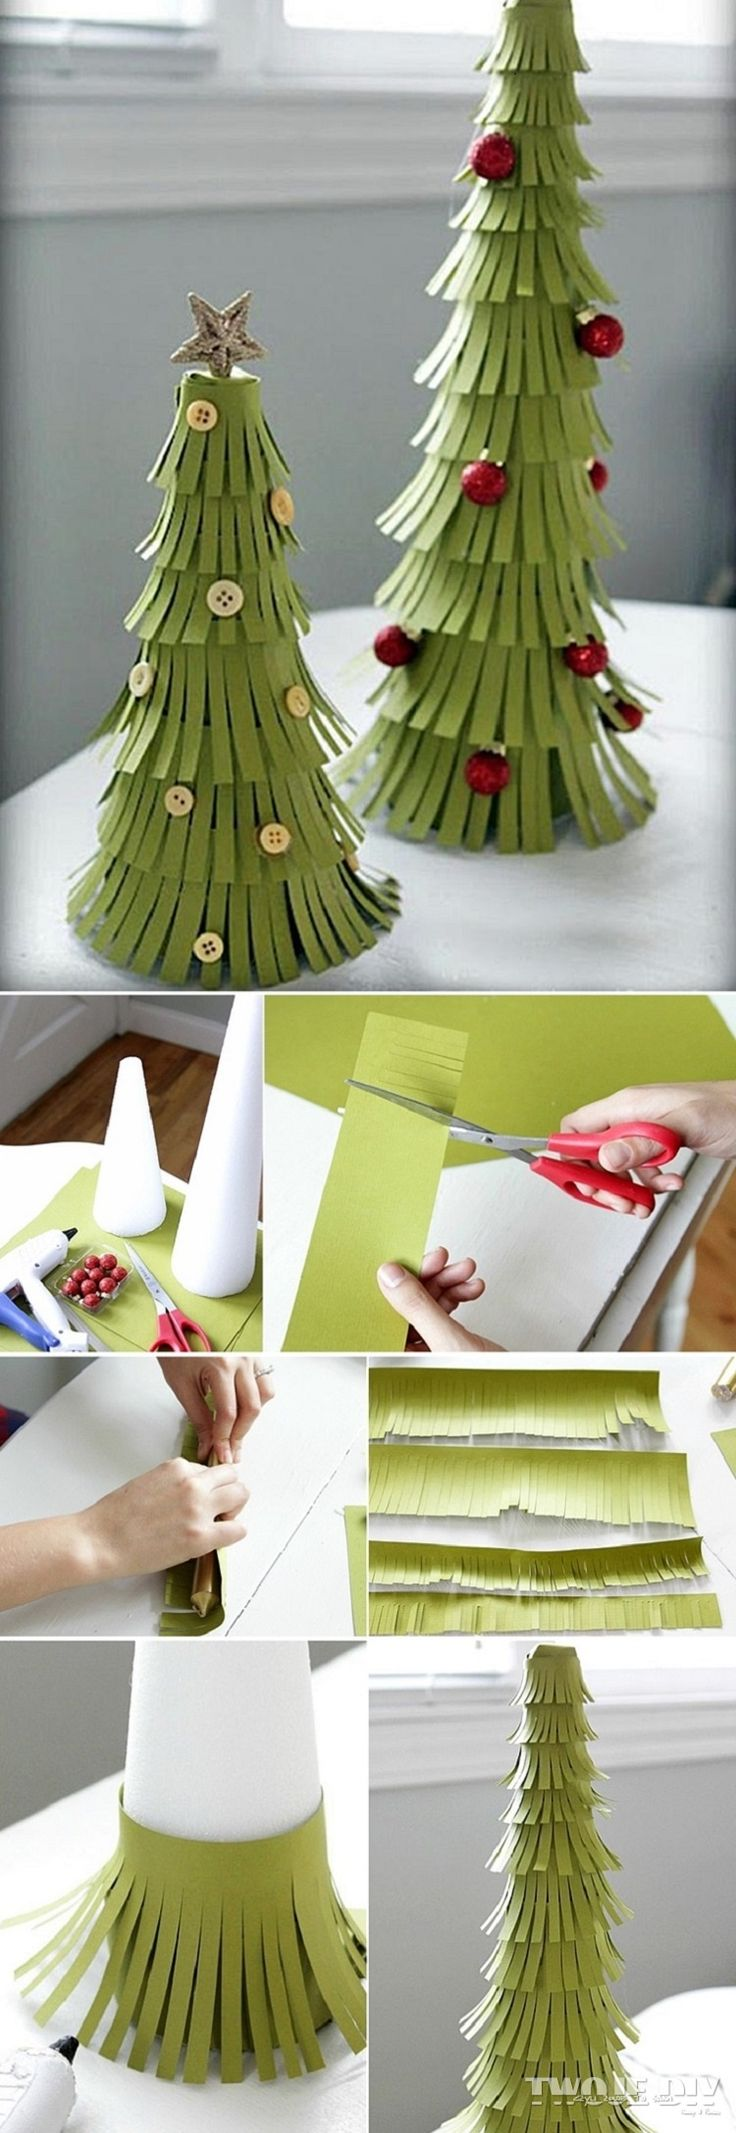 Foam Cone & Split paper chrissy trees